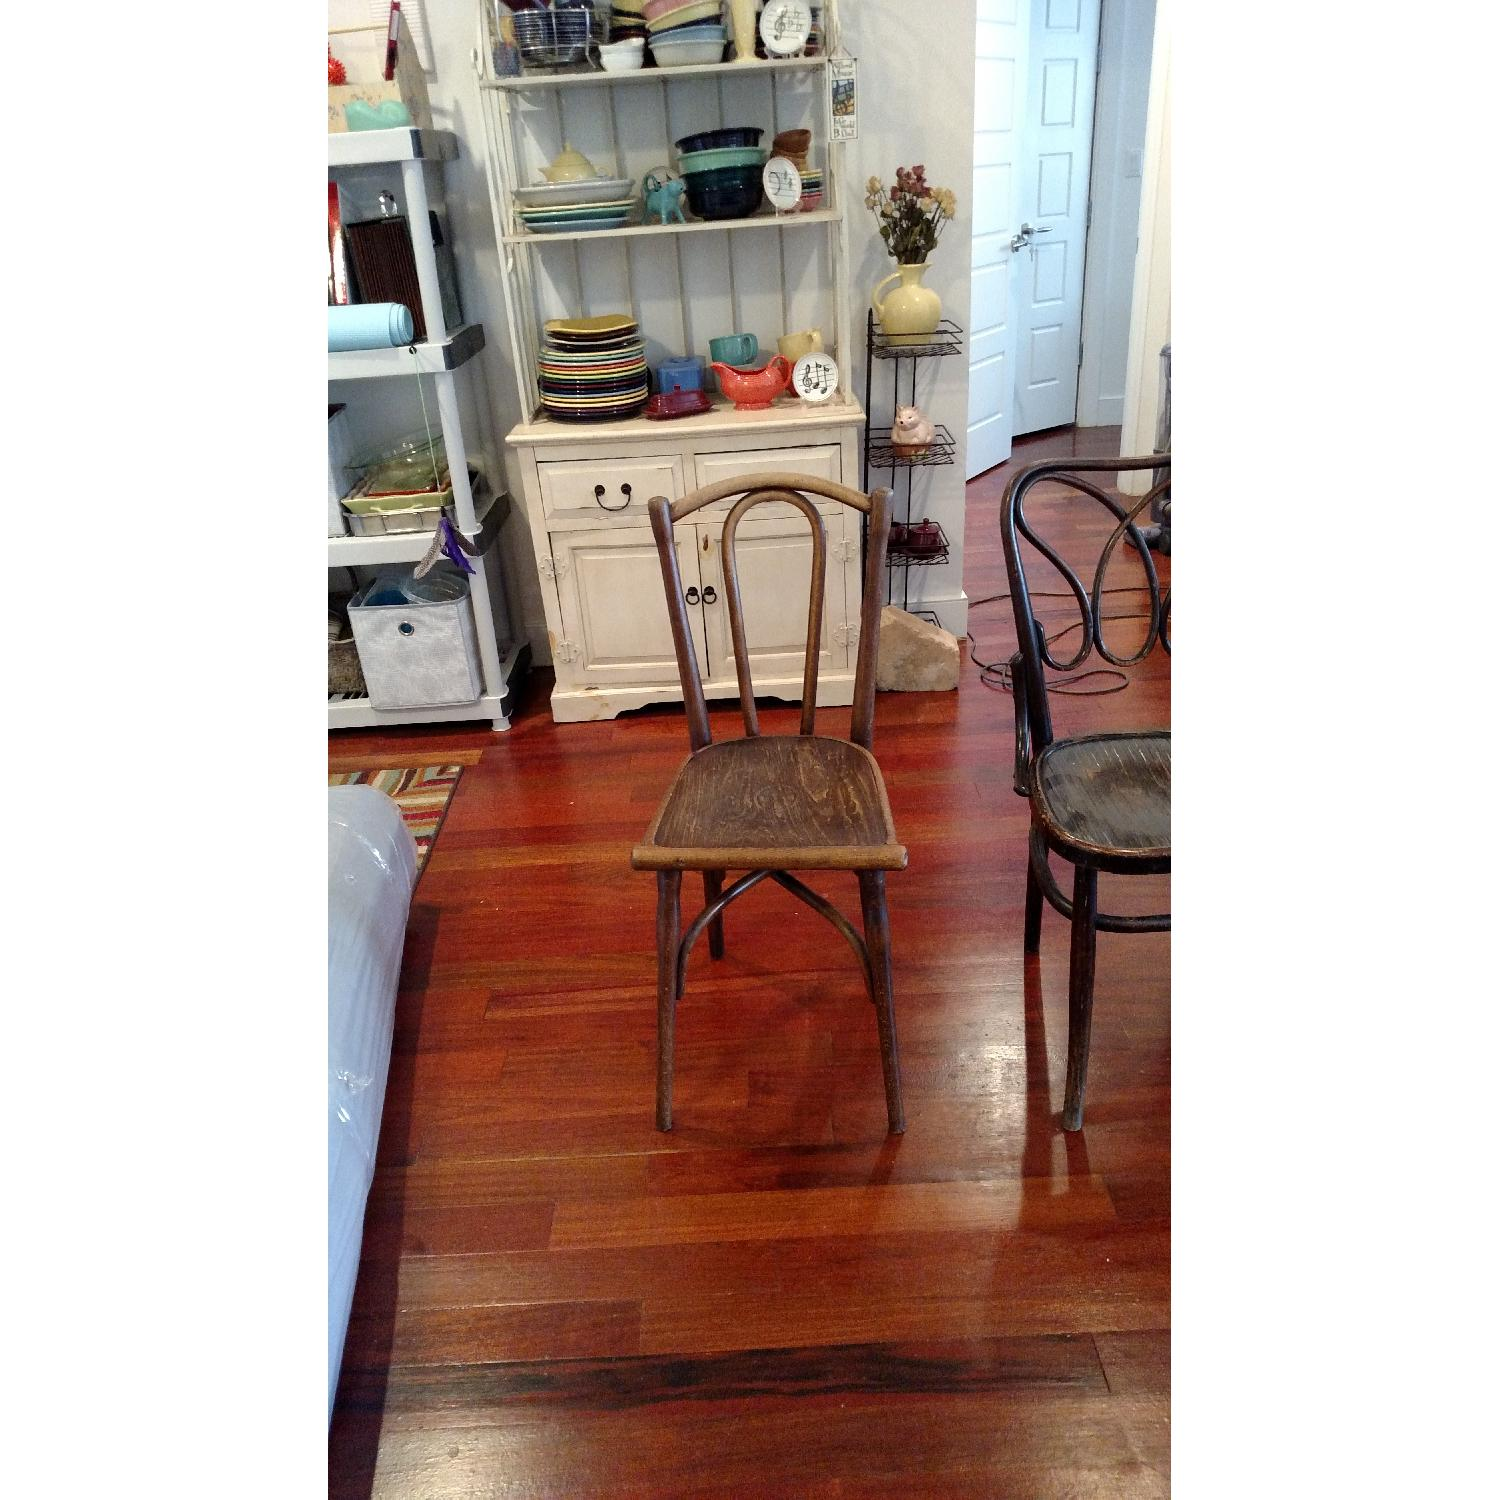 Thonet circa 1920s Bentwood Dining Chair w/ Floral Design Wood Seat - image-5